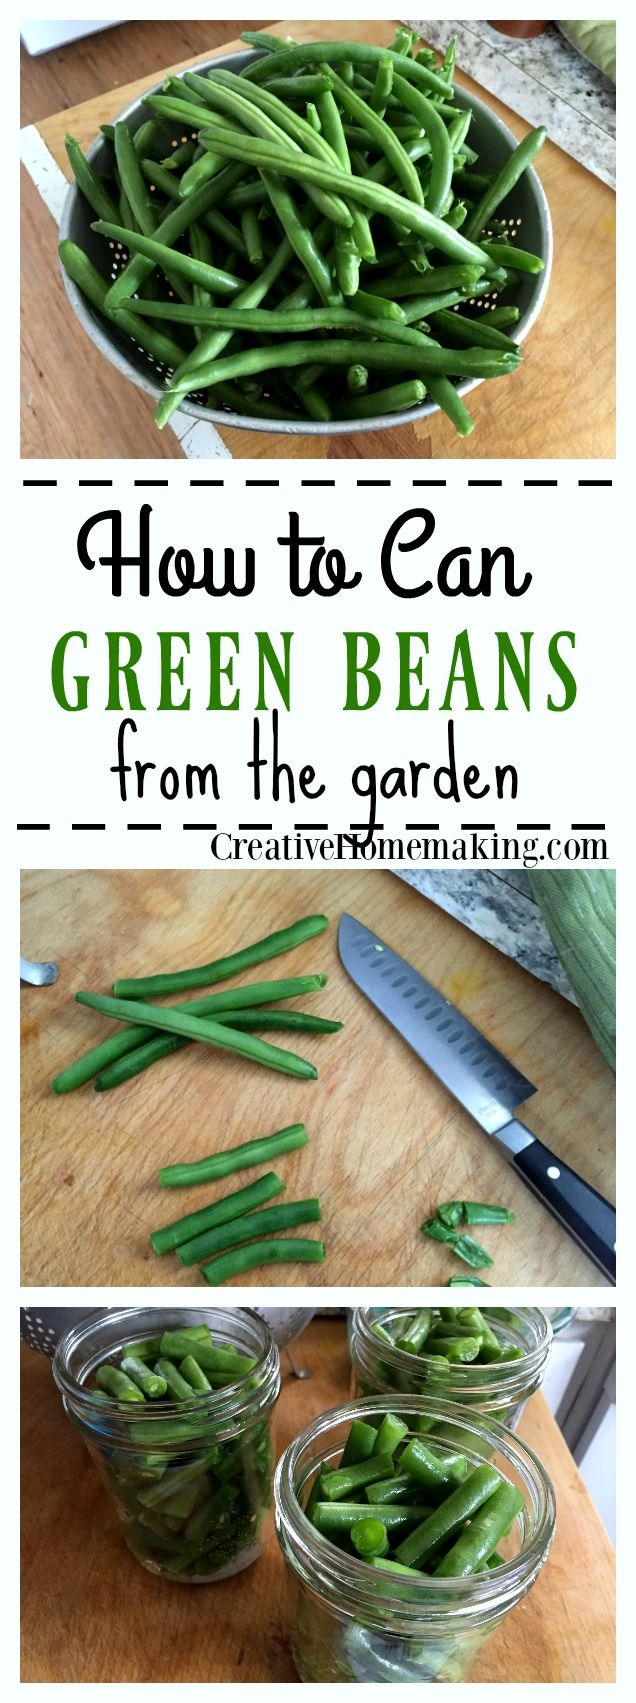 How to can green beans from the garden. Step by step pressure canning for beginners.